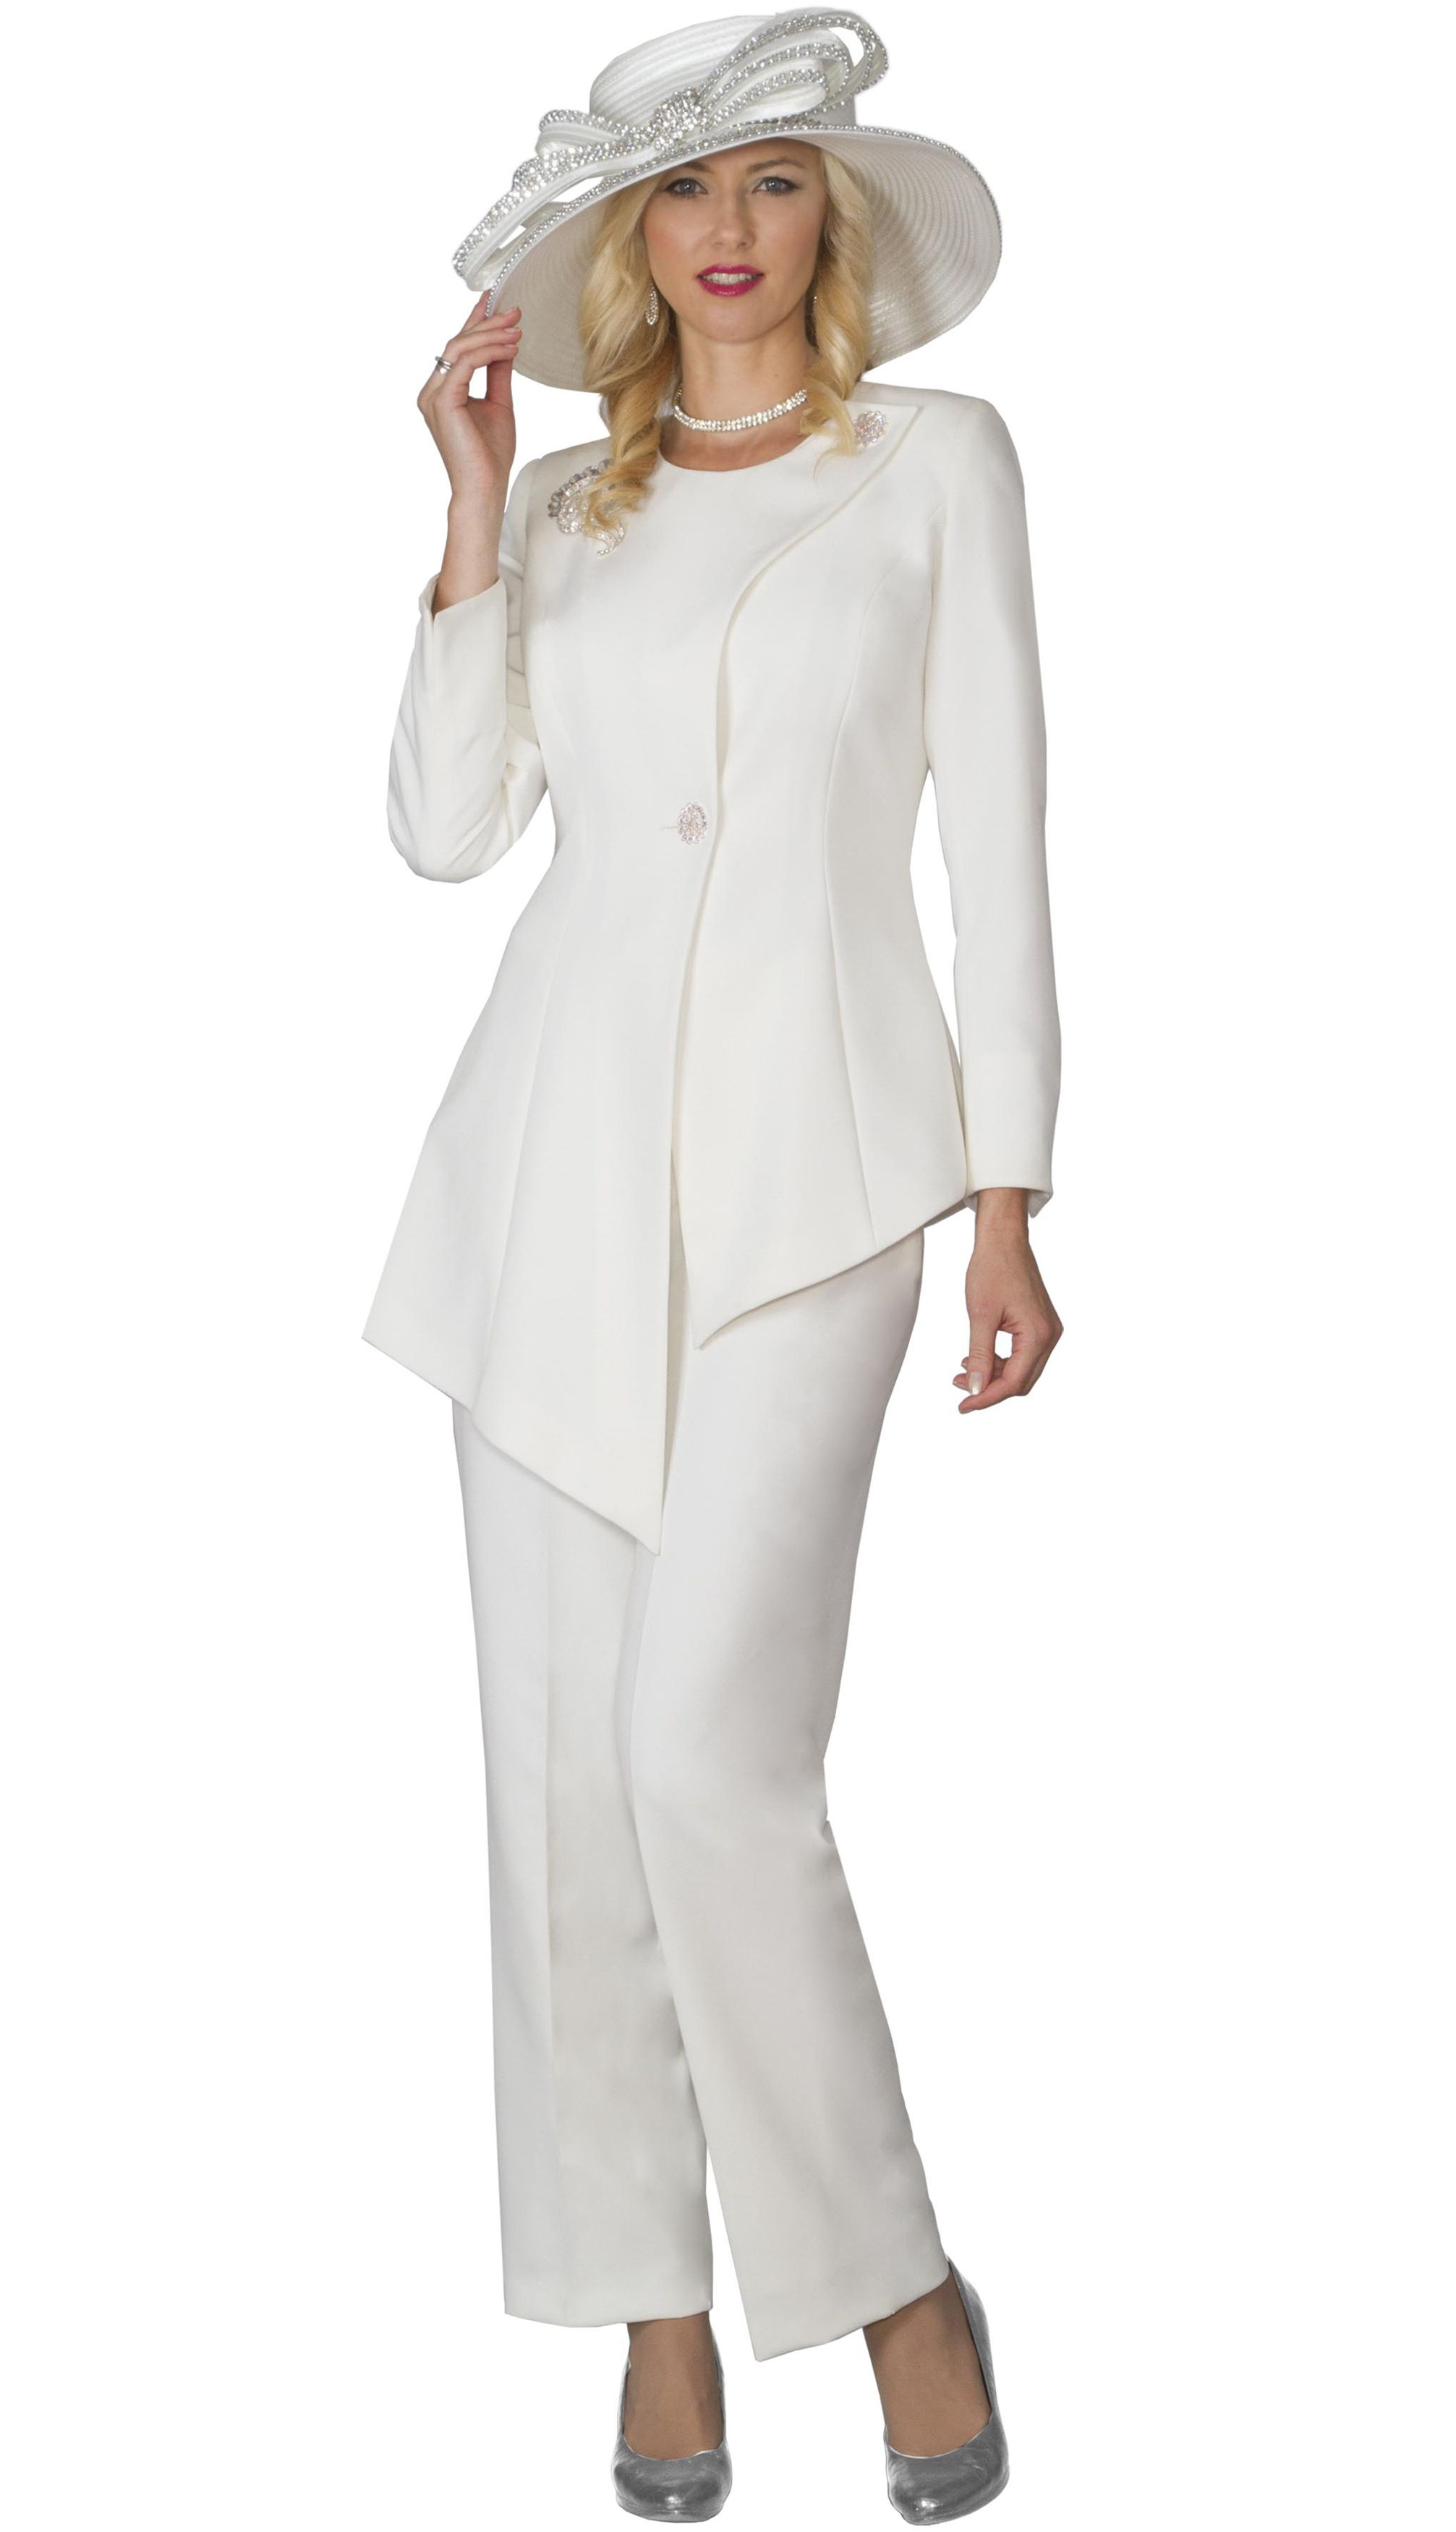 b9f7ad638ce Style Lily and Taylor 4028 2 Piece Womens Pant Suit With Asymmetric Style  Jacket Colors Ivory Red Black Sizes 4 6 8 10 12 14 16 18 20 22 24